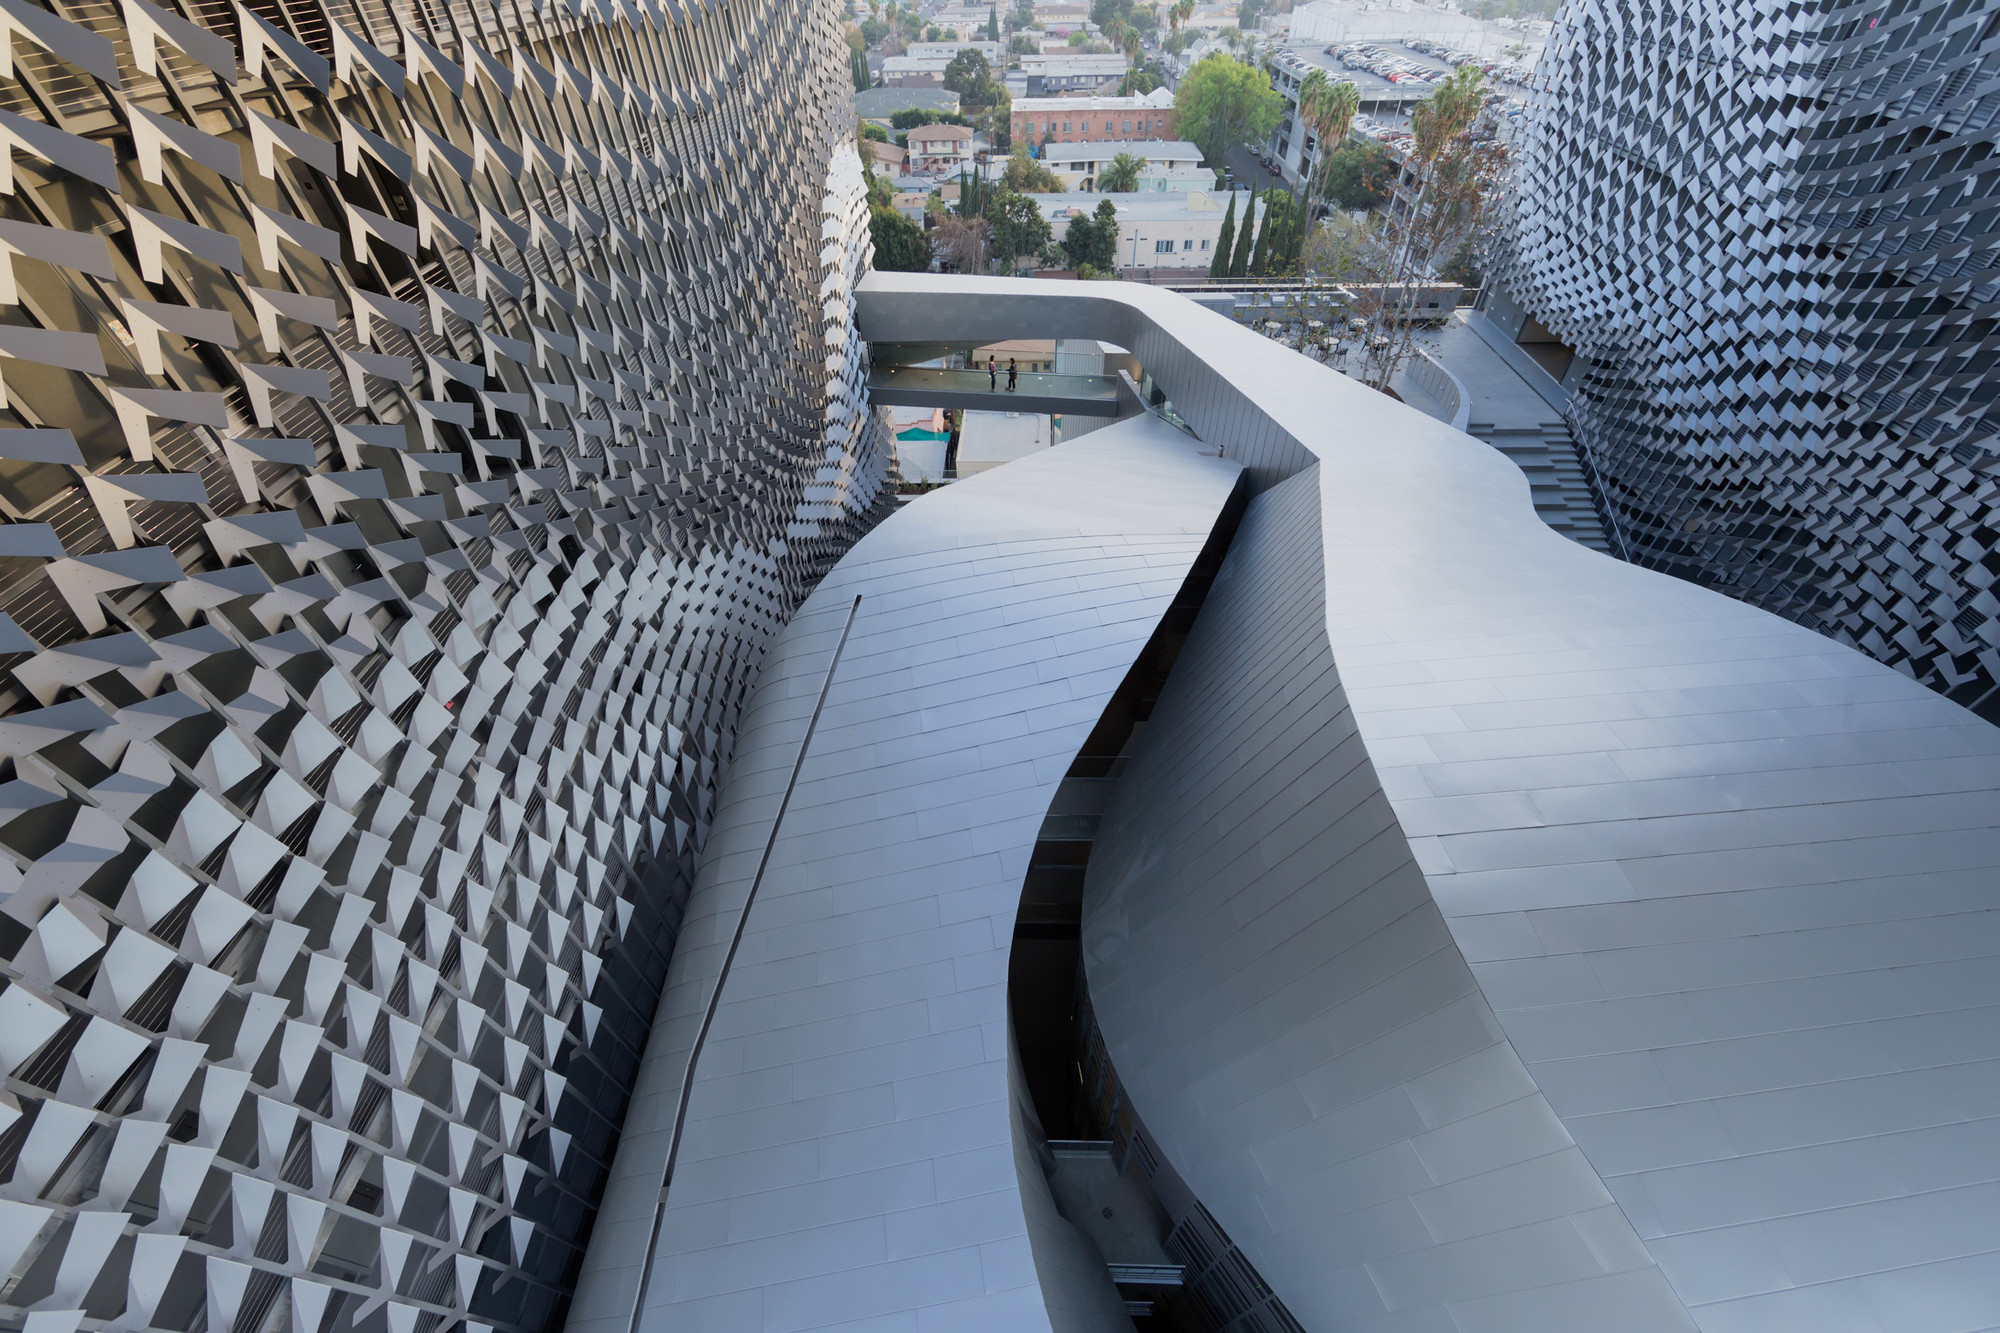 Emerson College Los Angeles / Morphosis Architects | ArchDaily